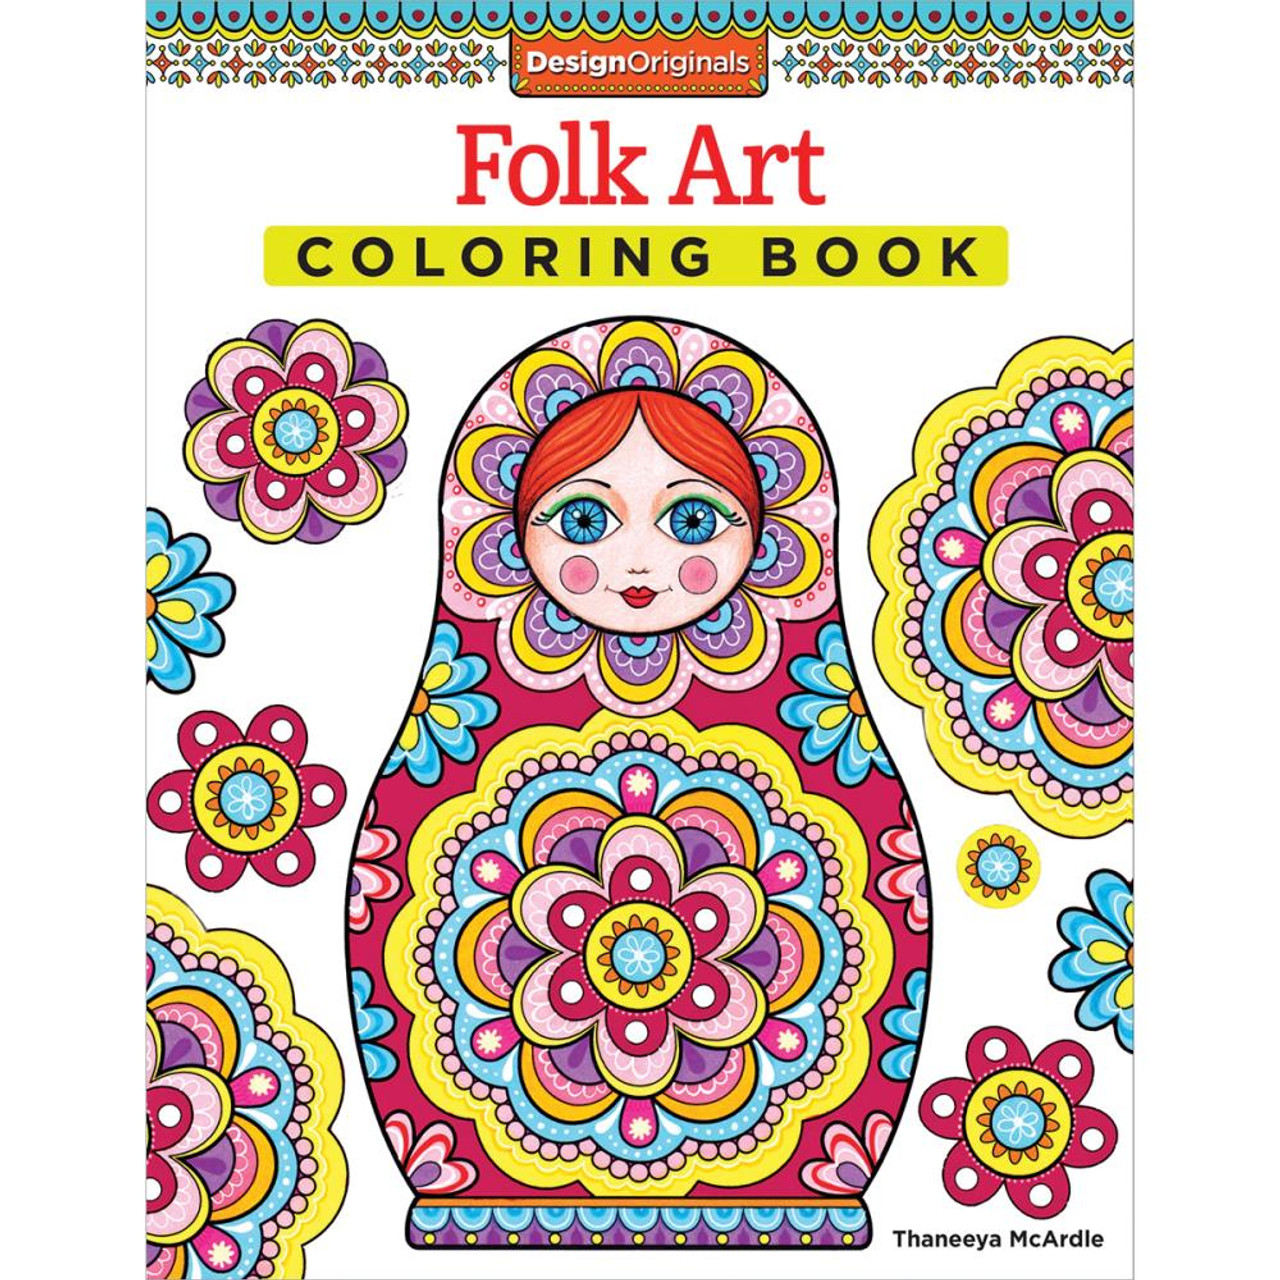 Design Originals Coloring Book Folk Art